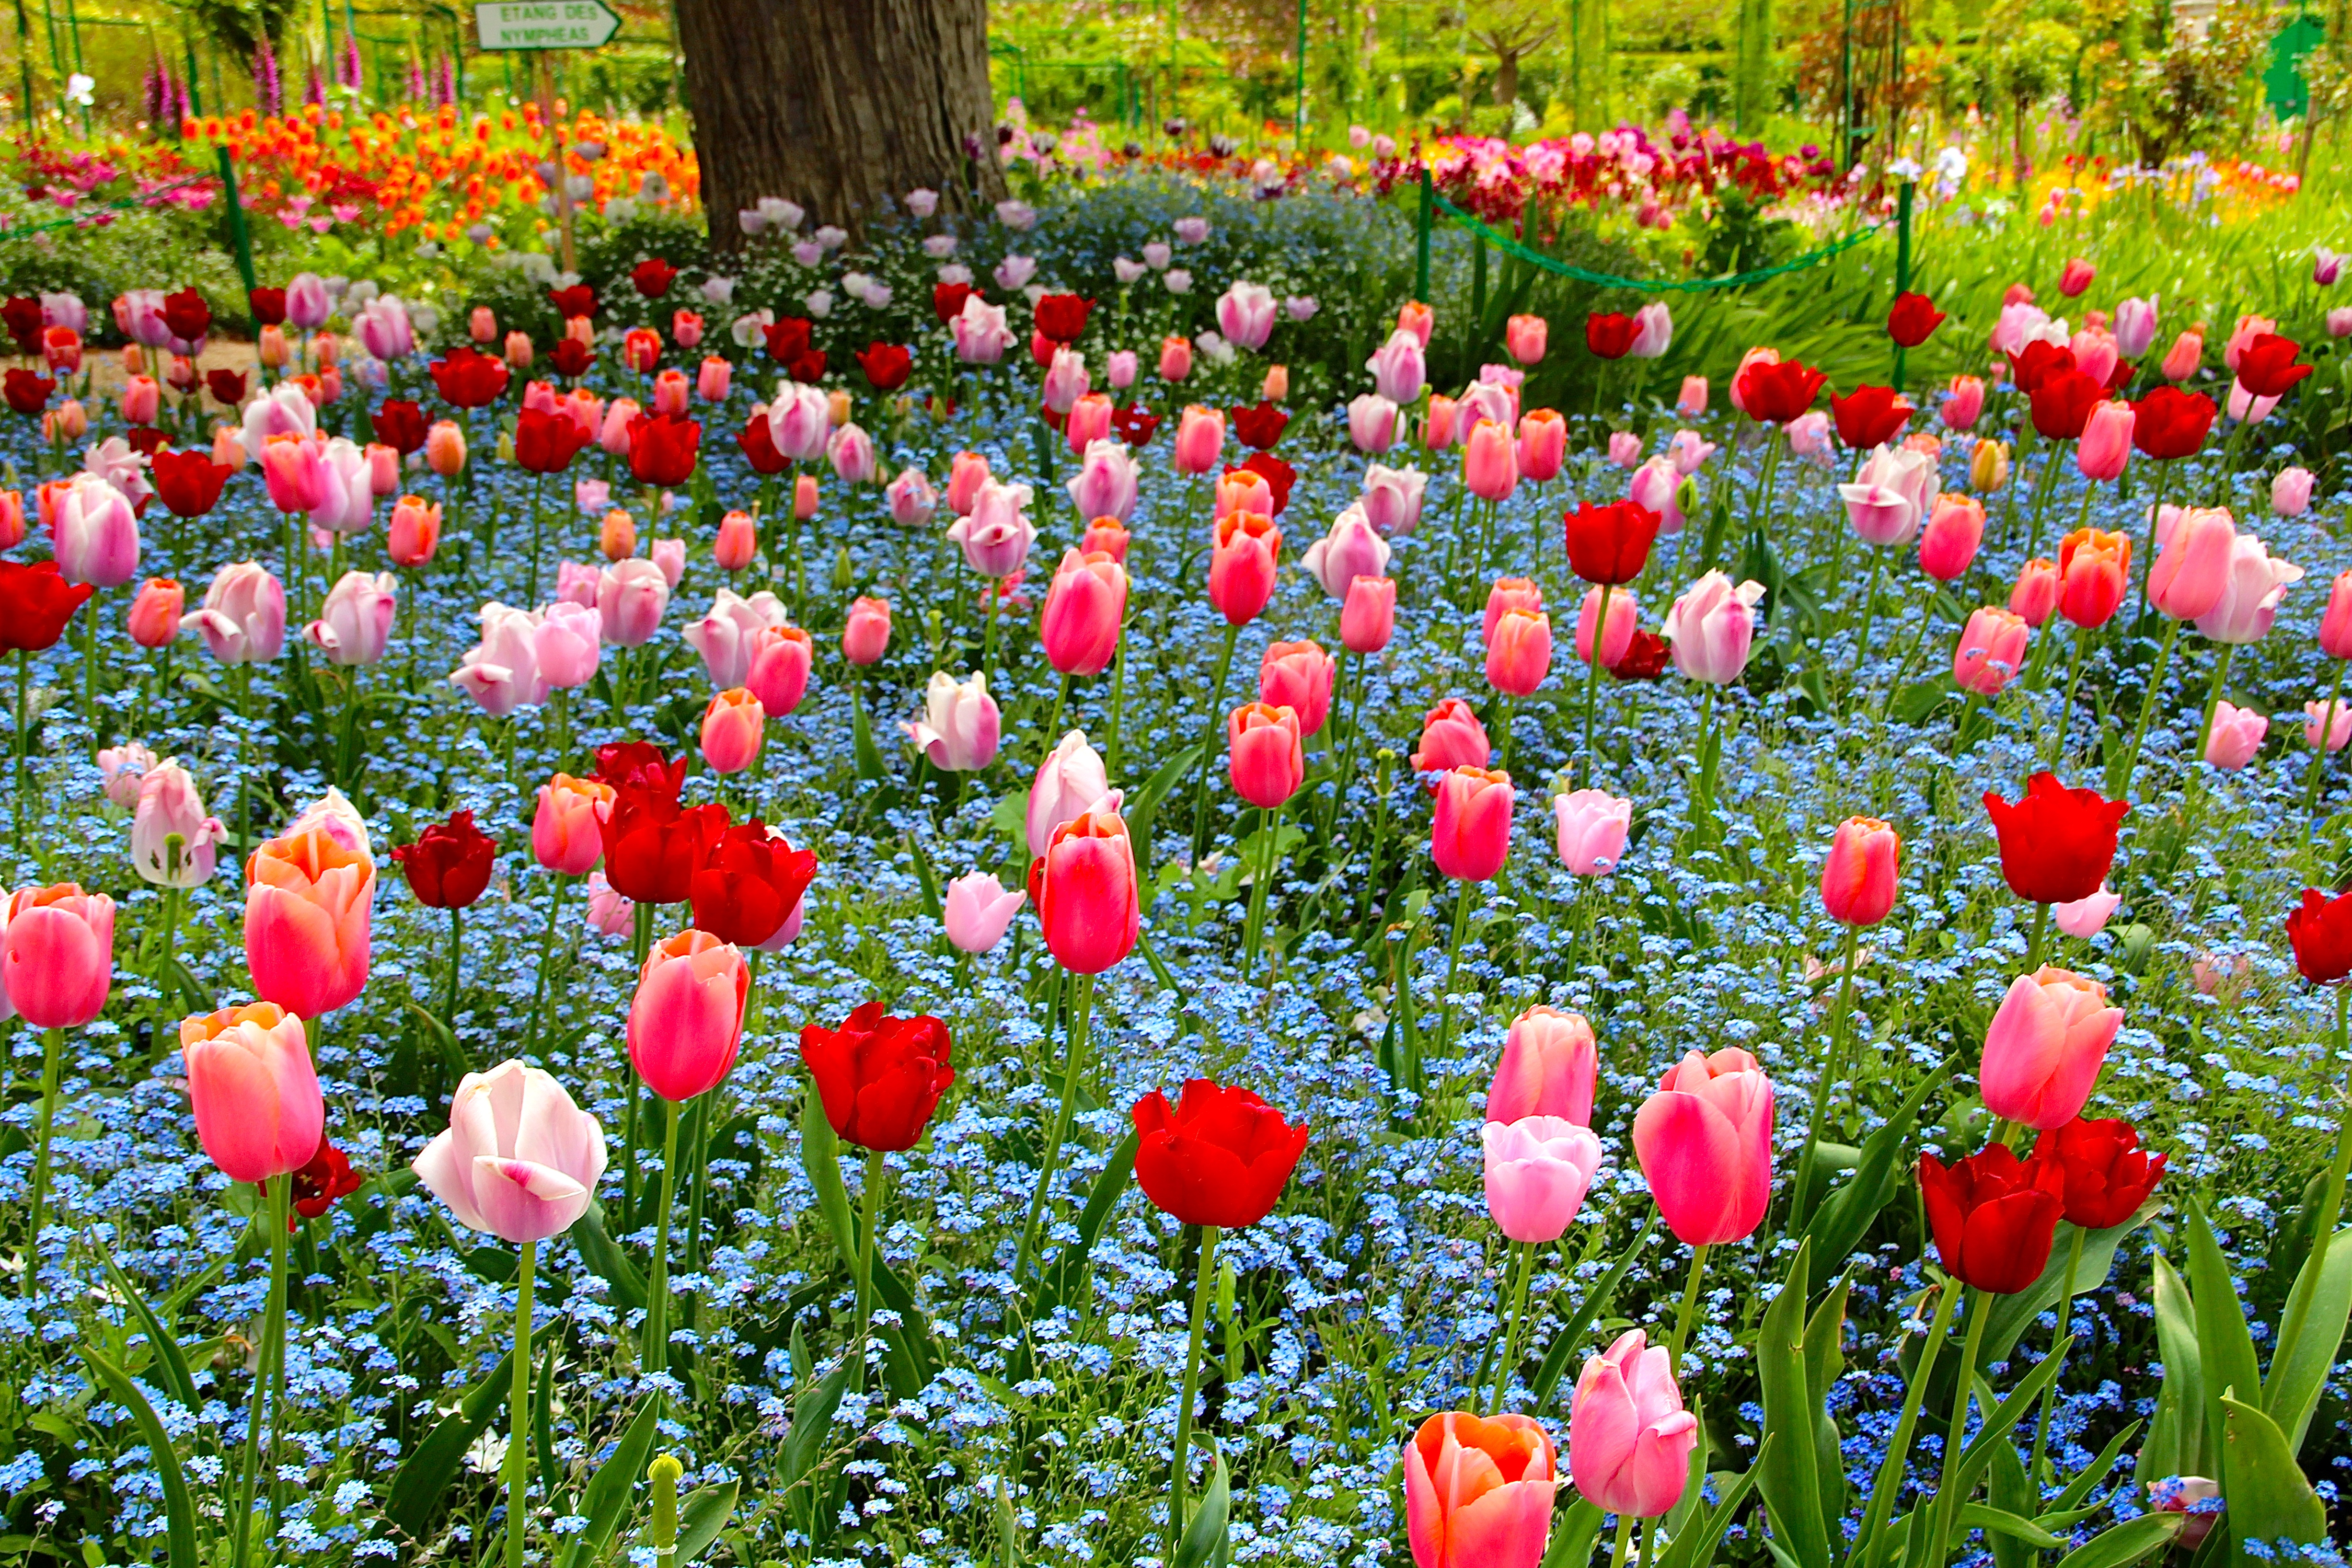 Tulips and Forget-me-nots at Giverny. France. 05.09.16